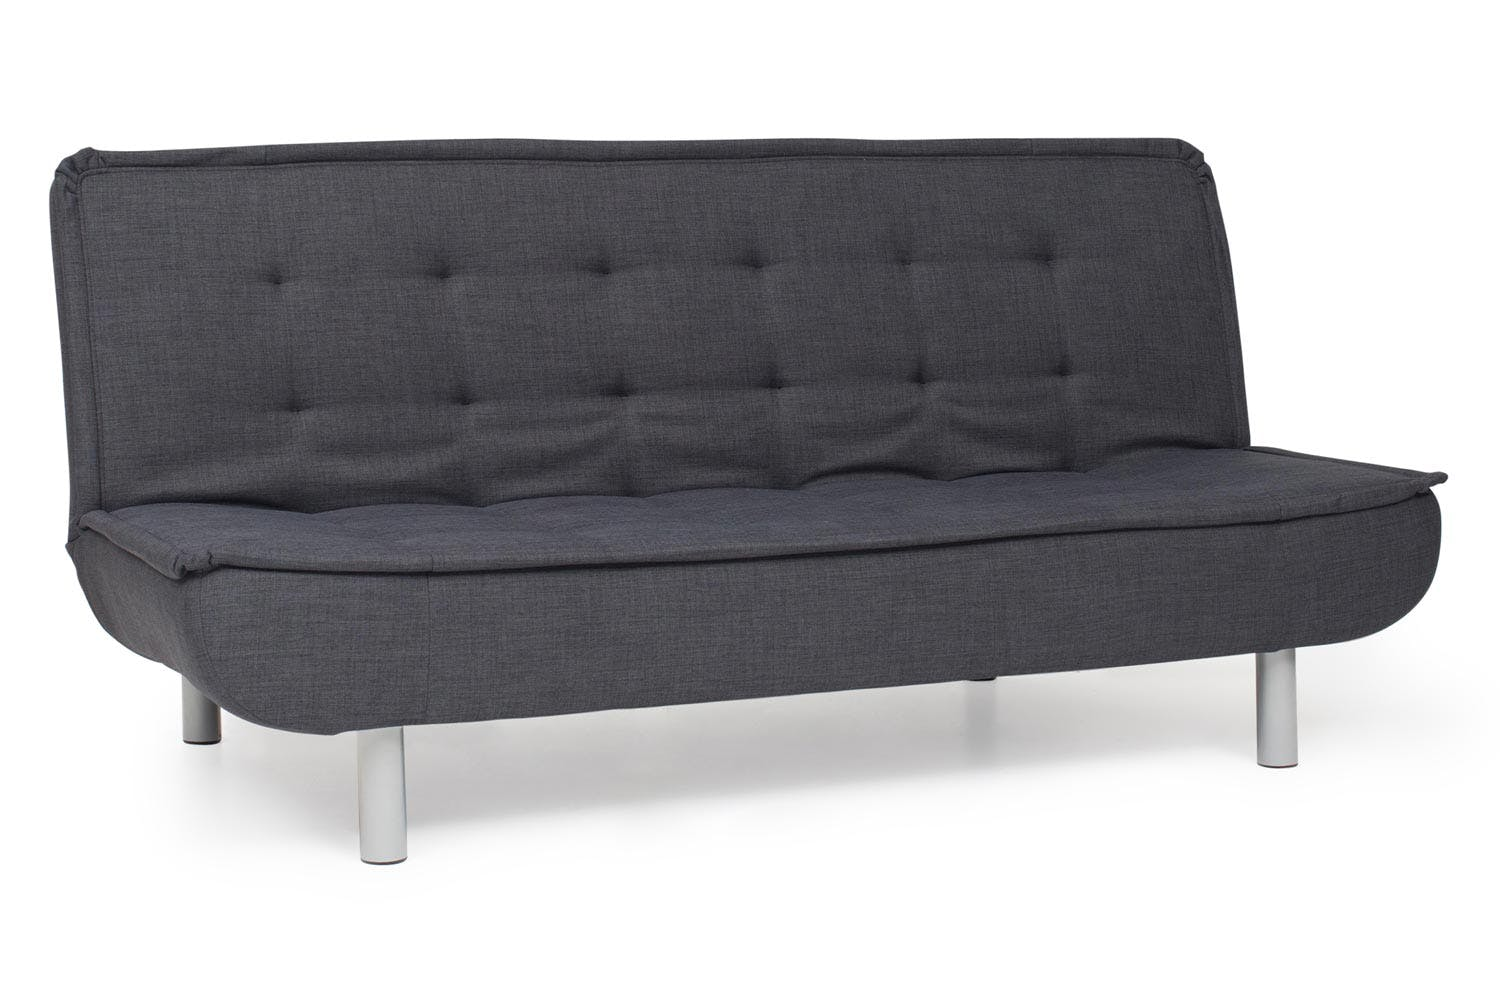 Sofa Bed Harvey Norman Nsw